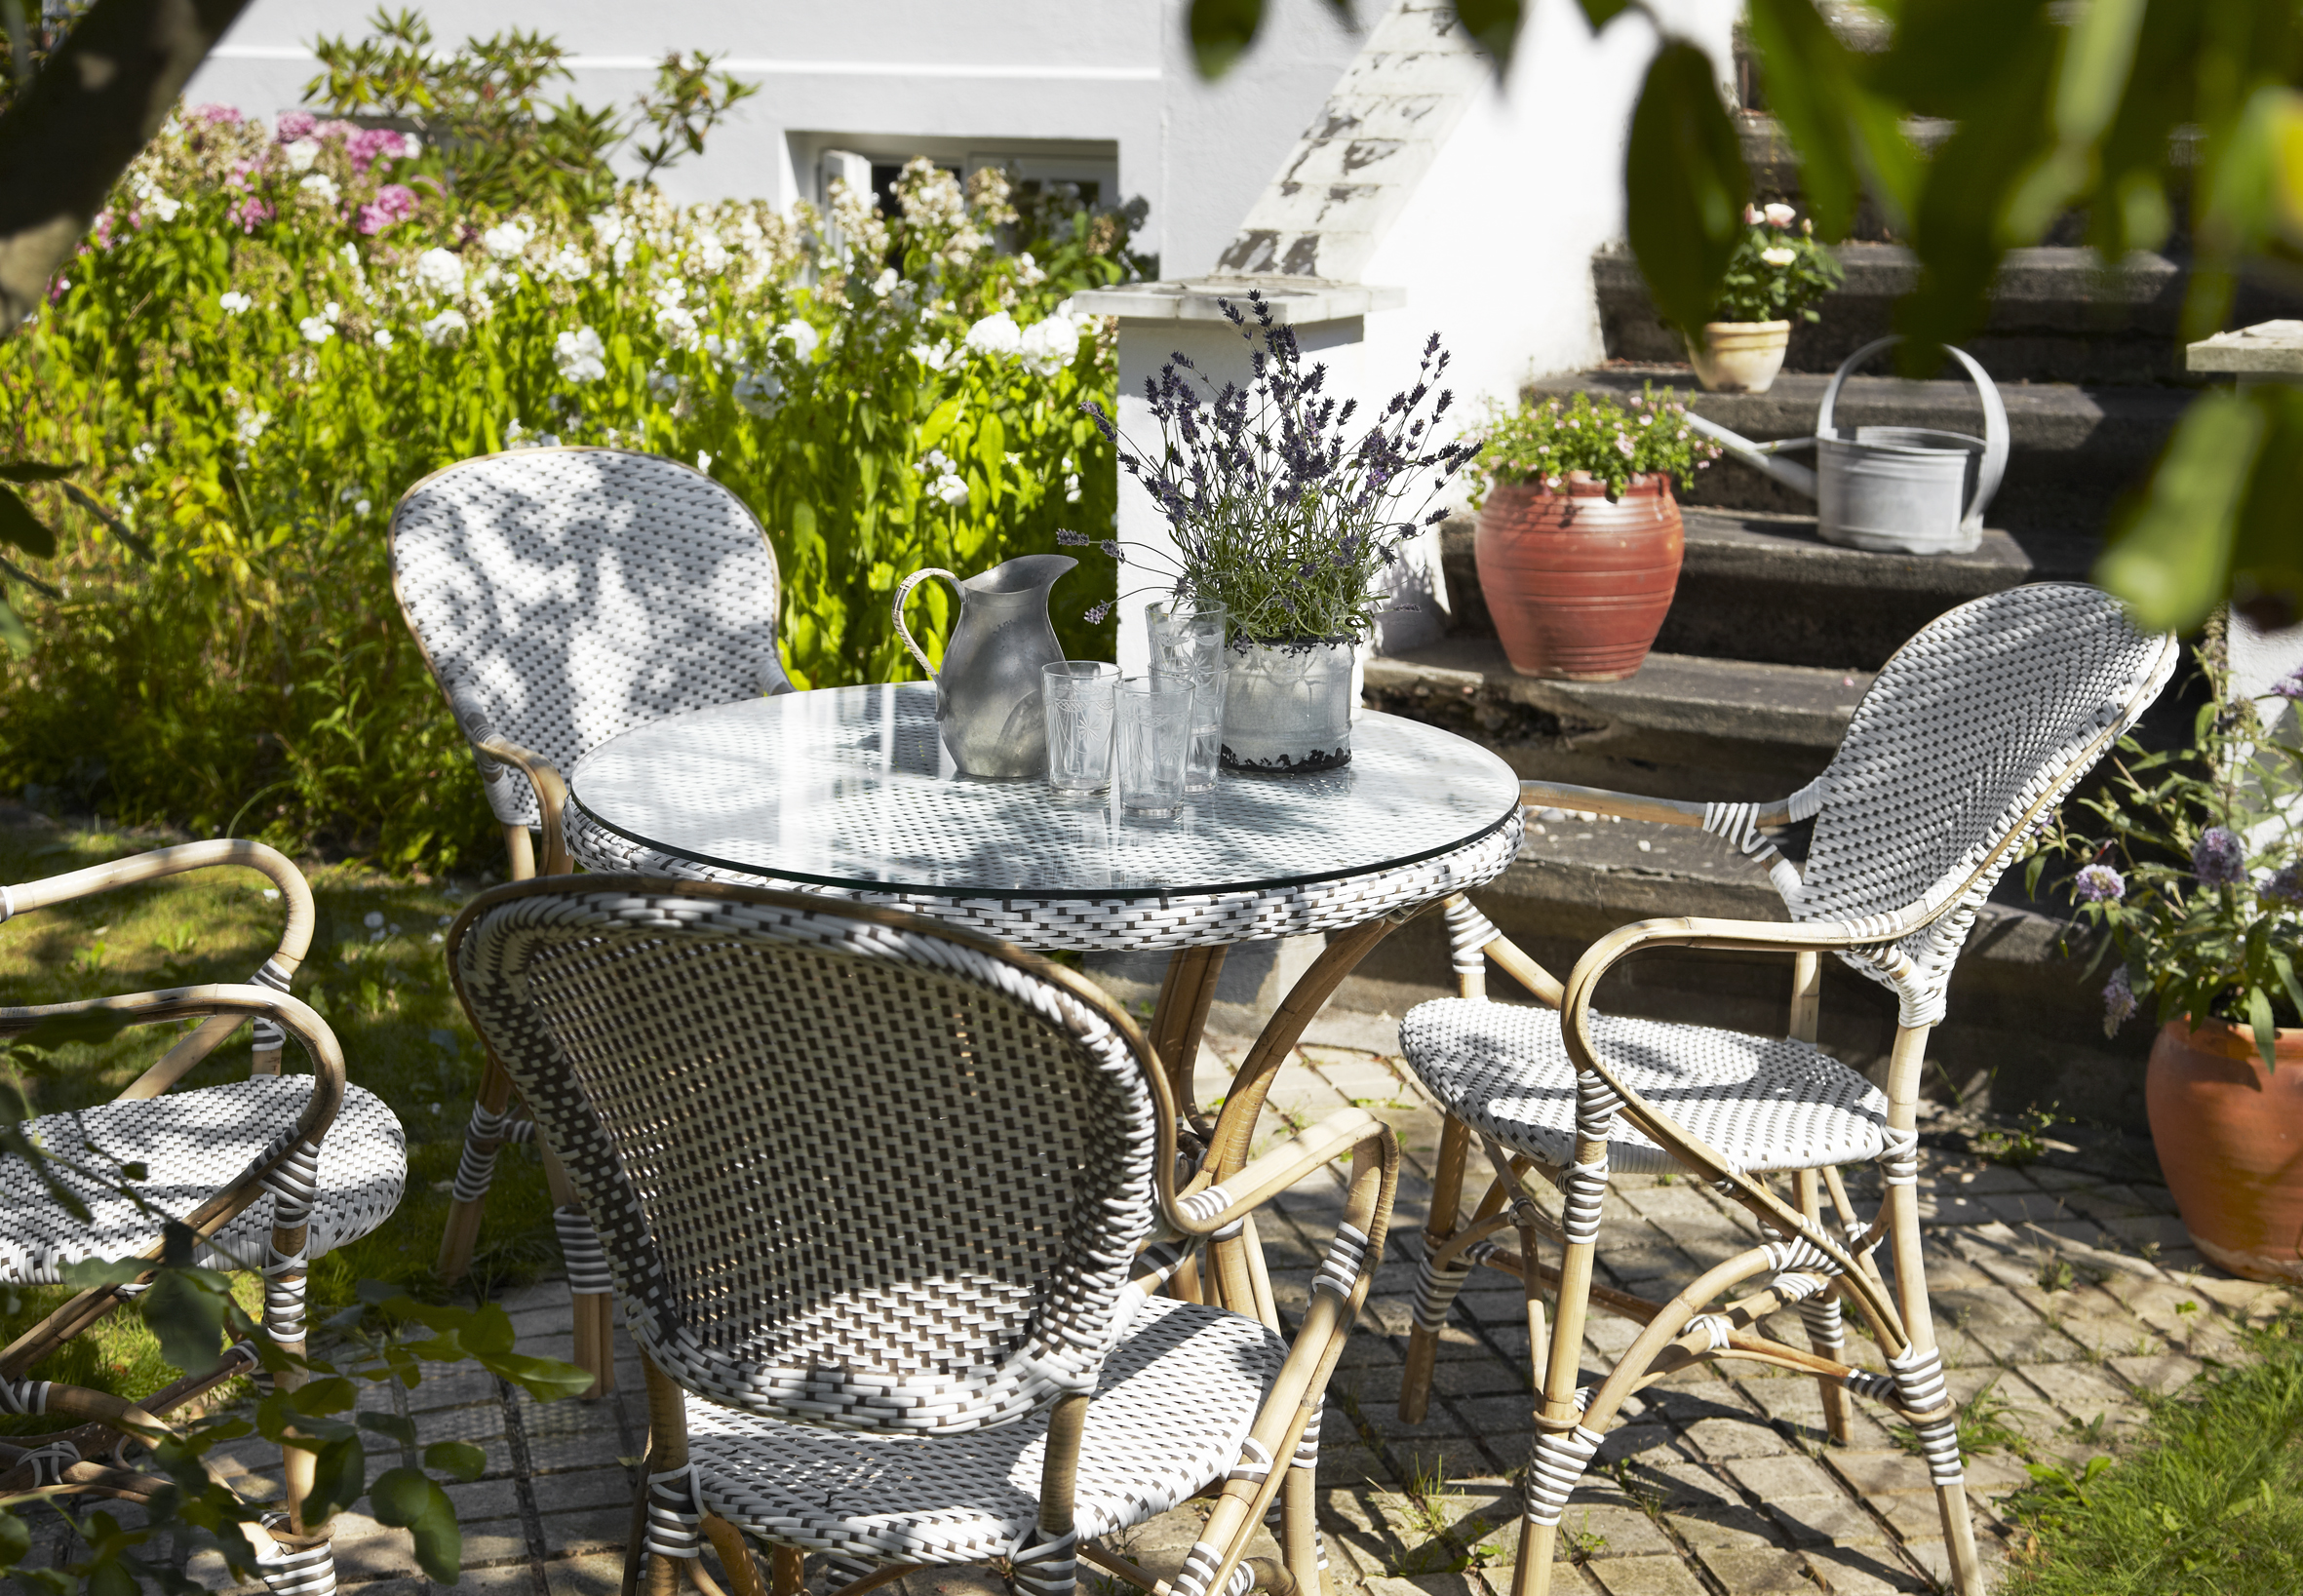 Sika Design Isabell rattan chairs and table on patio